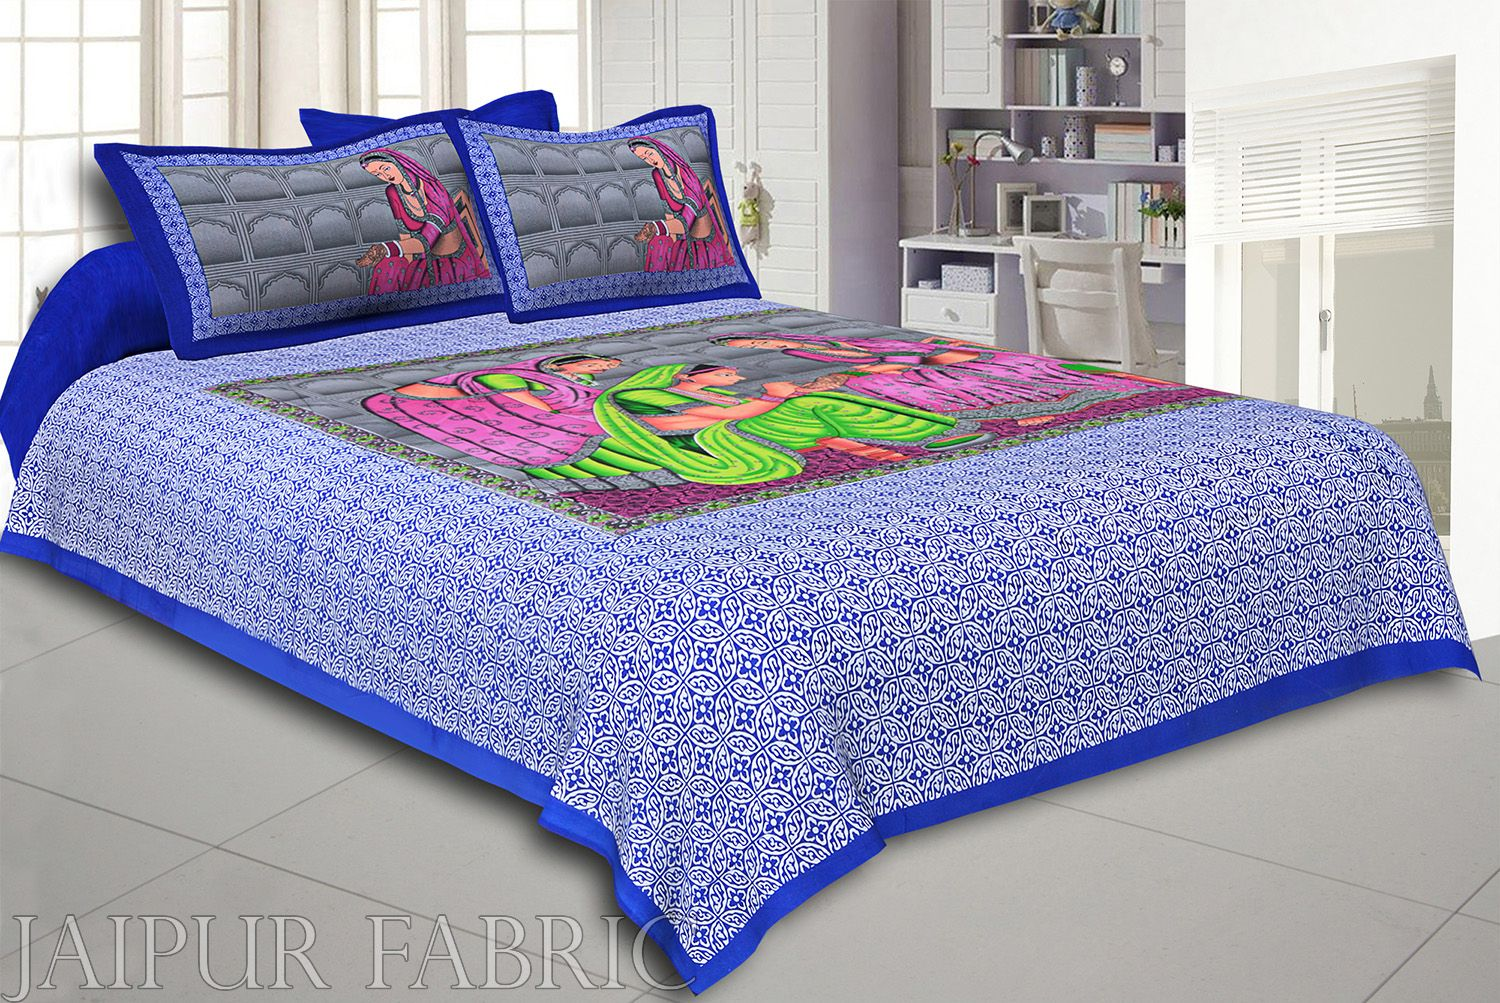 Blue Border With Blue Base '' Lady With Mehandi Creation '' Cotton Double BedSheet With 2 Cover